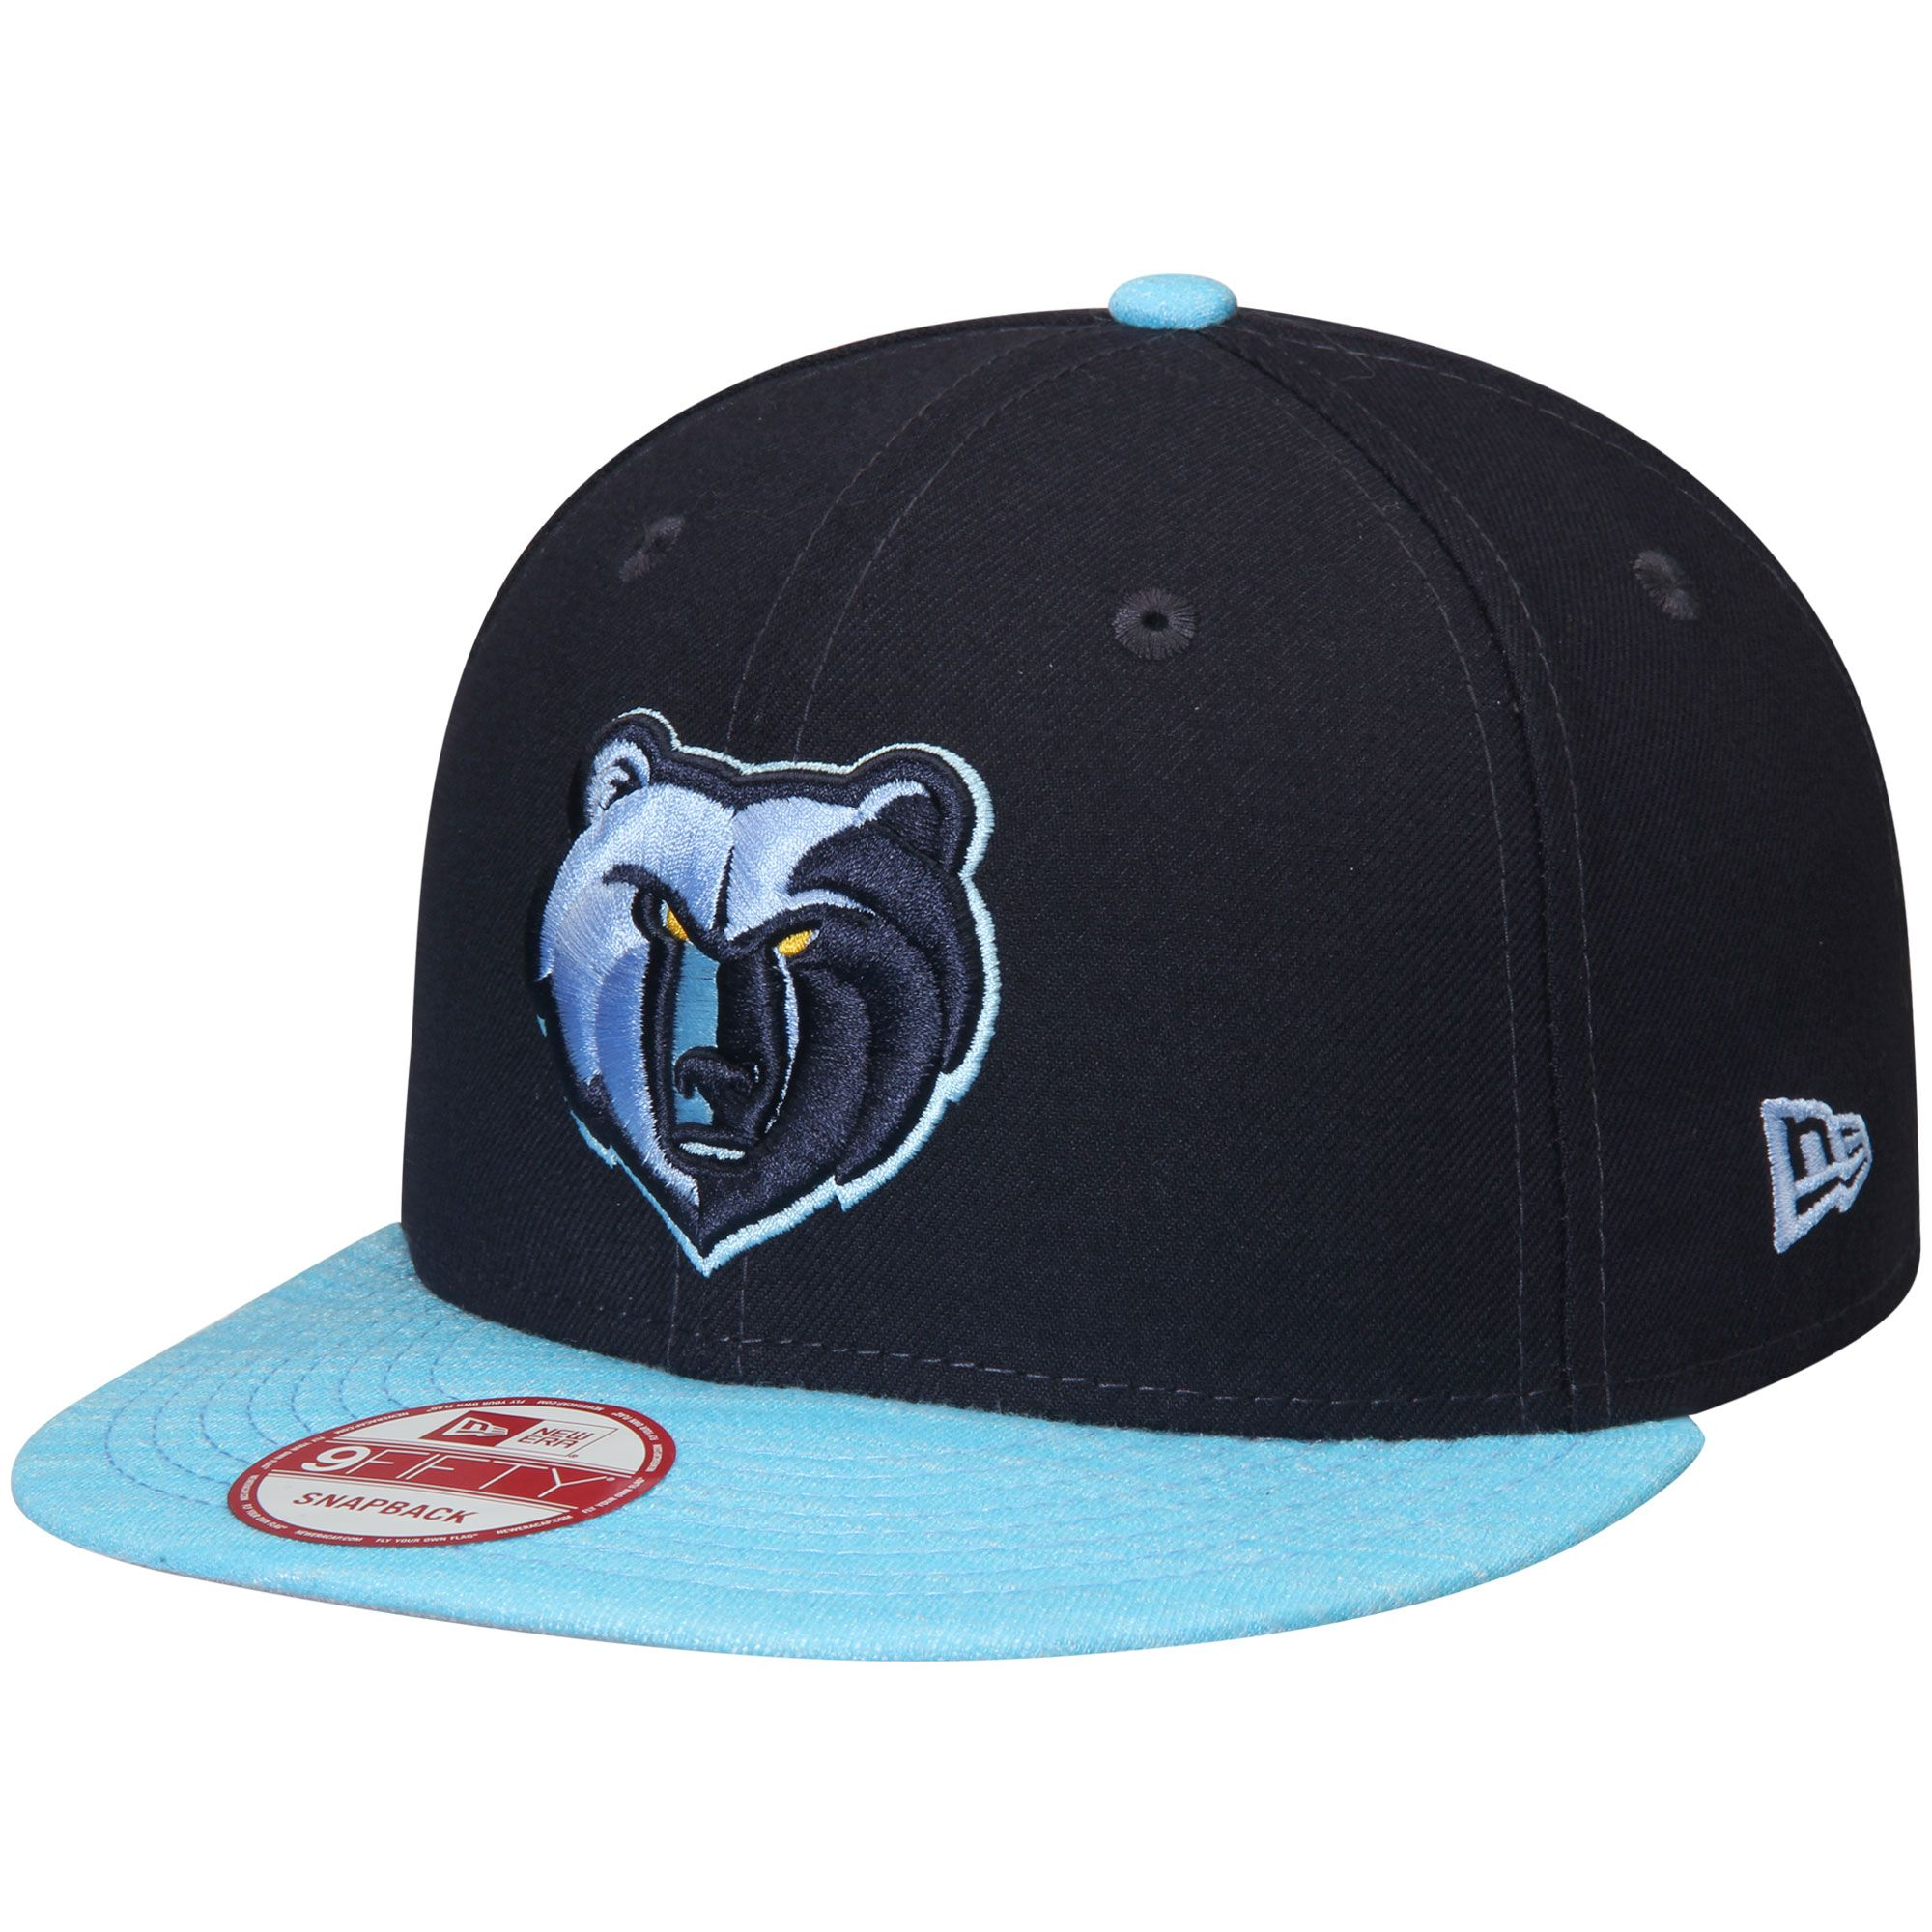 the best attitude 74793 bf692 Men s Memphis Grizzlies New Era Navy Blue Current Logo Team Solid 9FIFTY Snapback  Adjustable Hat